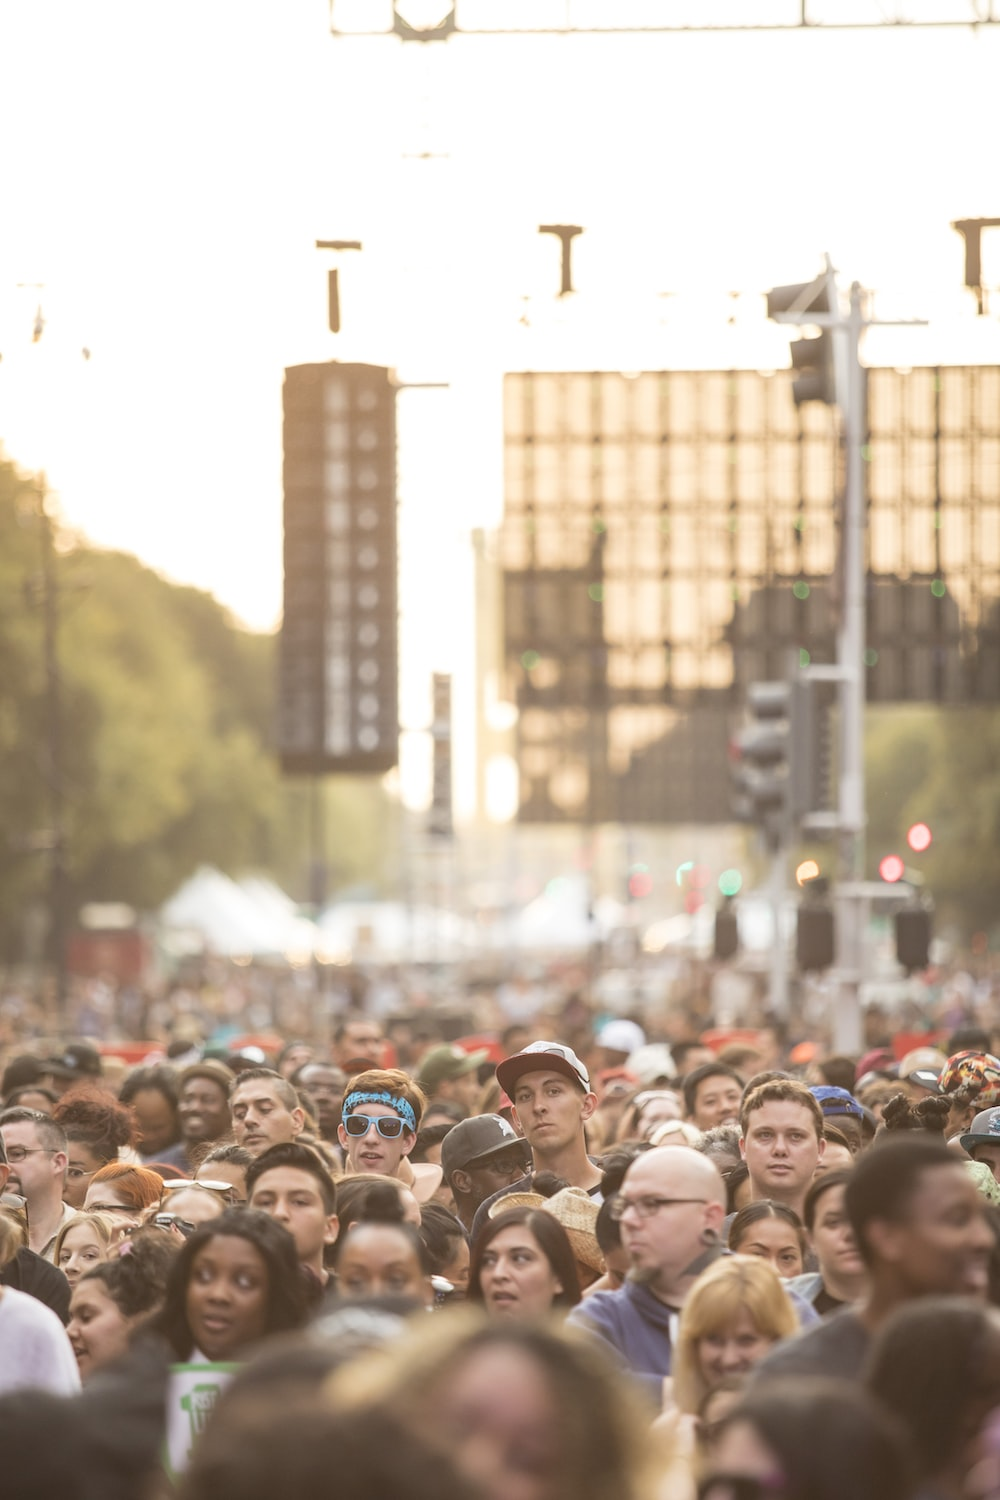 people in a concert during daytime